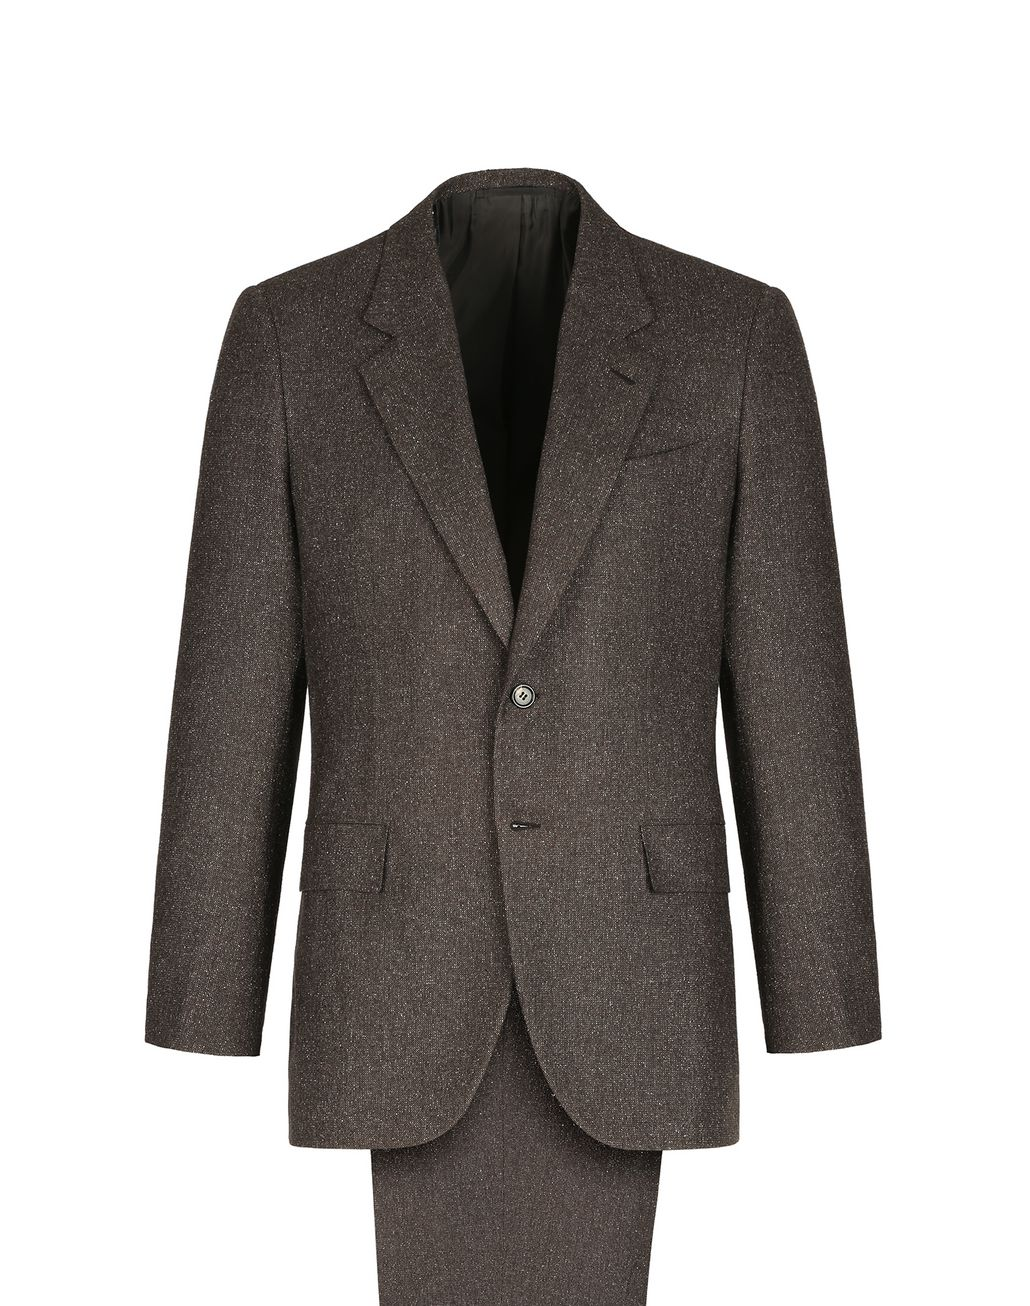 BRIONI Abito Parioli Marrone Scuro   Suits & Jackets Uomo f